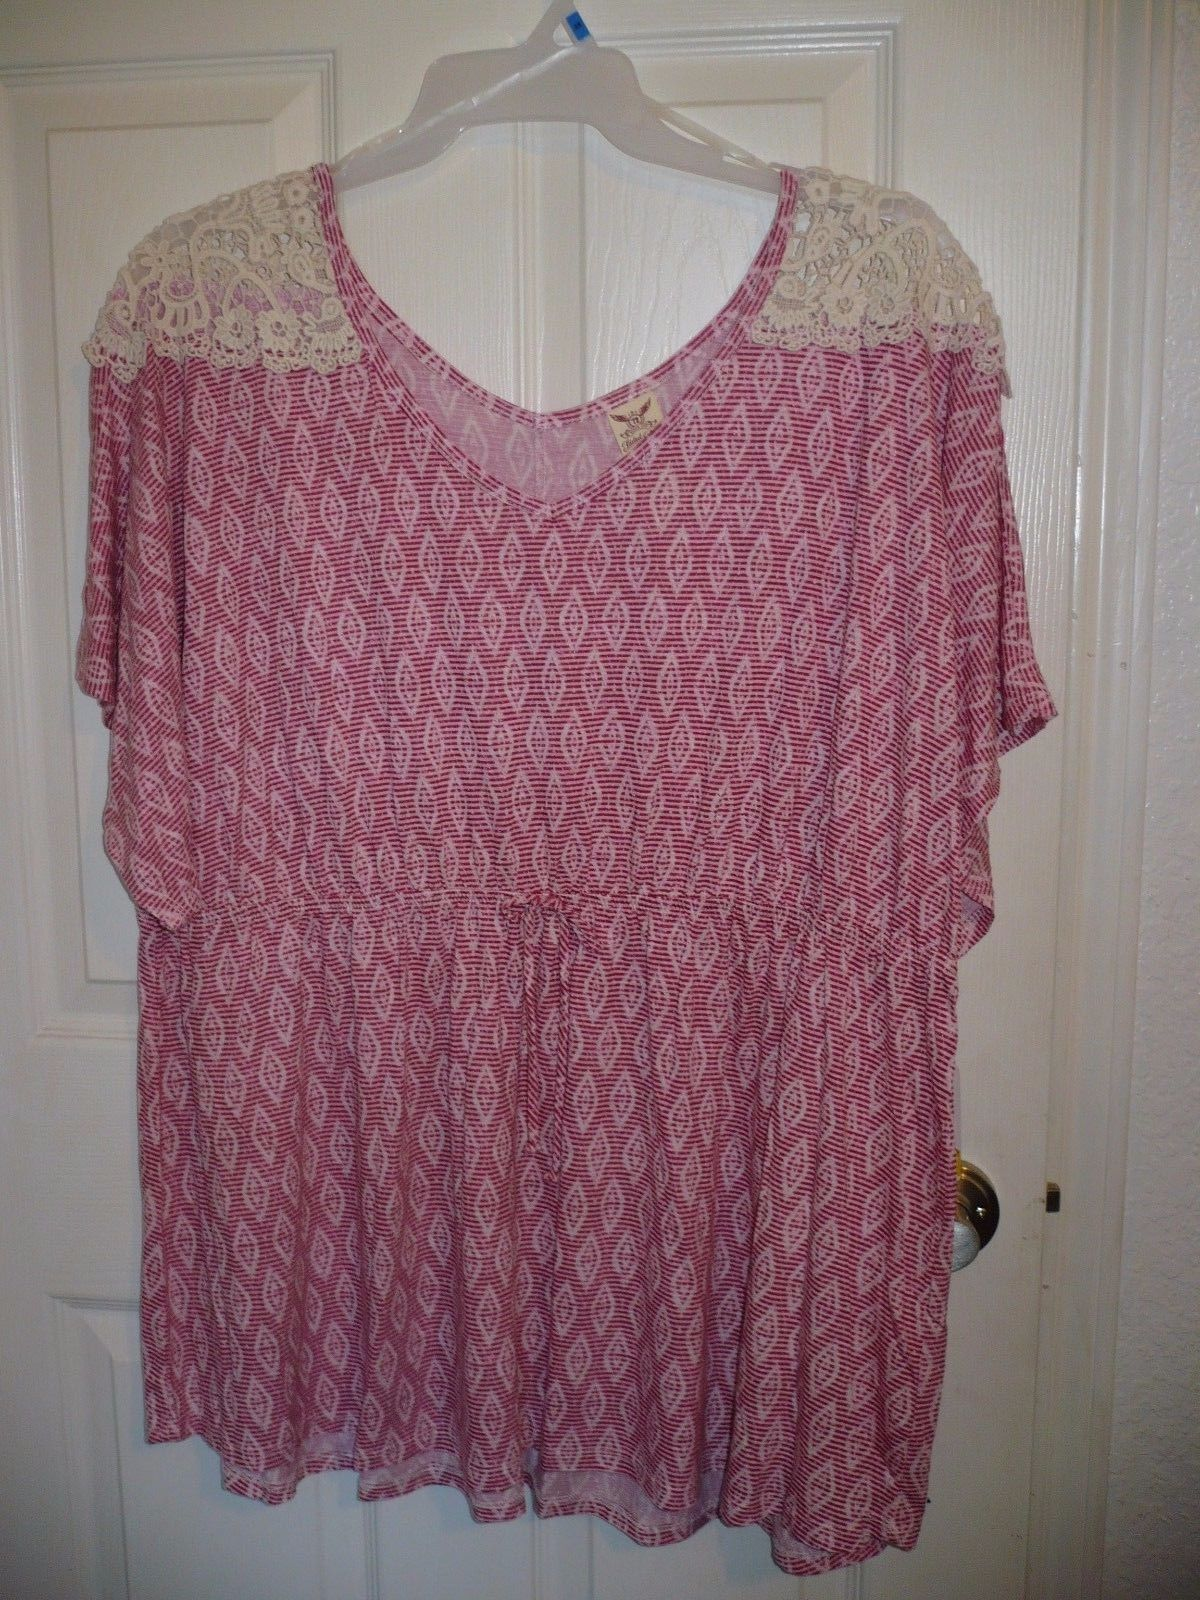 Faded Glory Women's Plus Cinch Waist Top Pink Print Size 22/24W 3X NEW